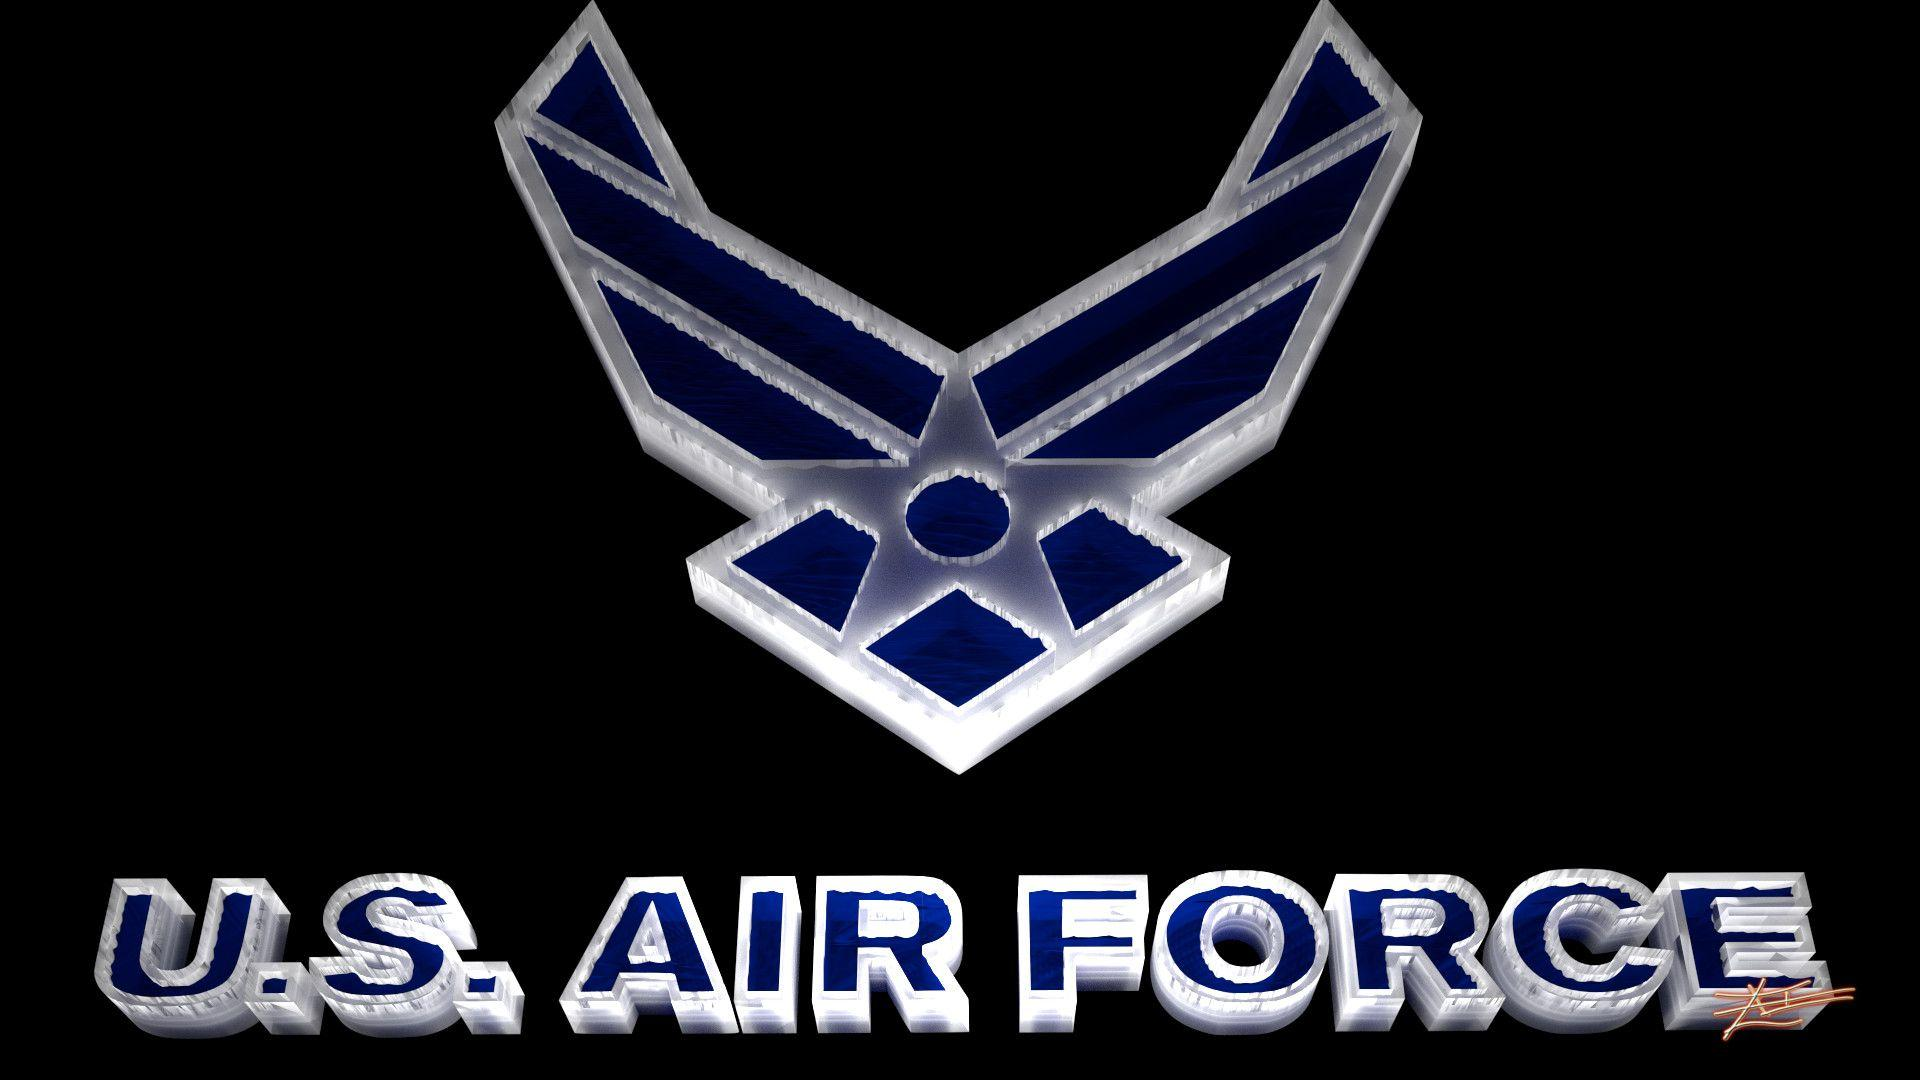 Usa Air Force Wallpapers Wallpaper Cave